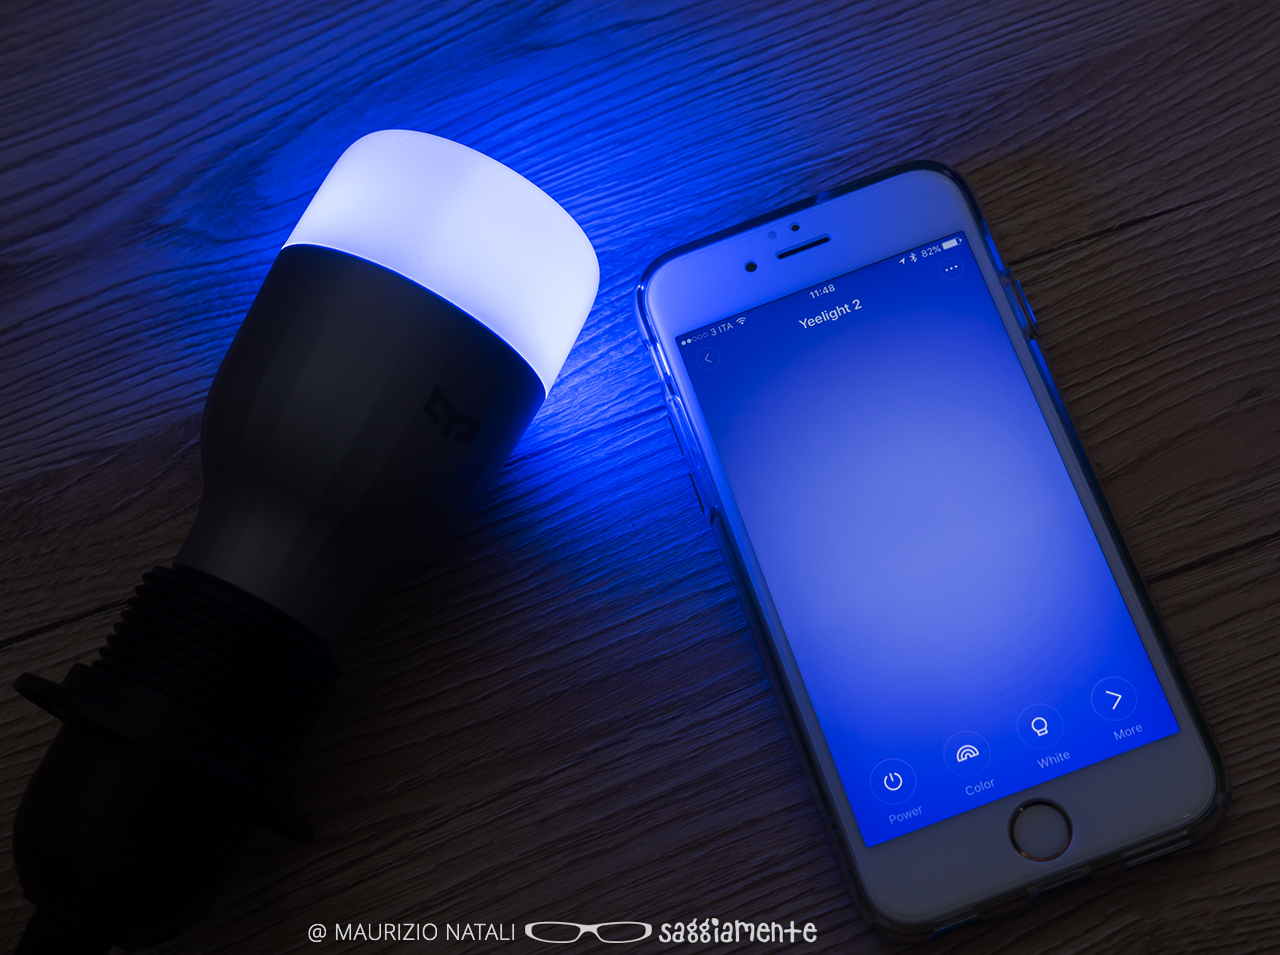 Recensione: xiaomi yeelight rgbw le luci led smart colorate ed